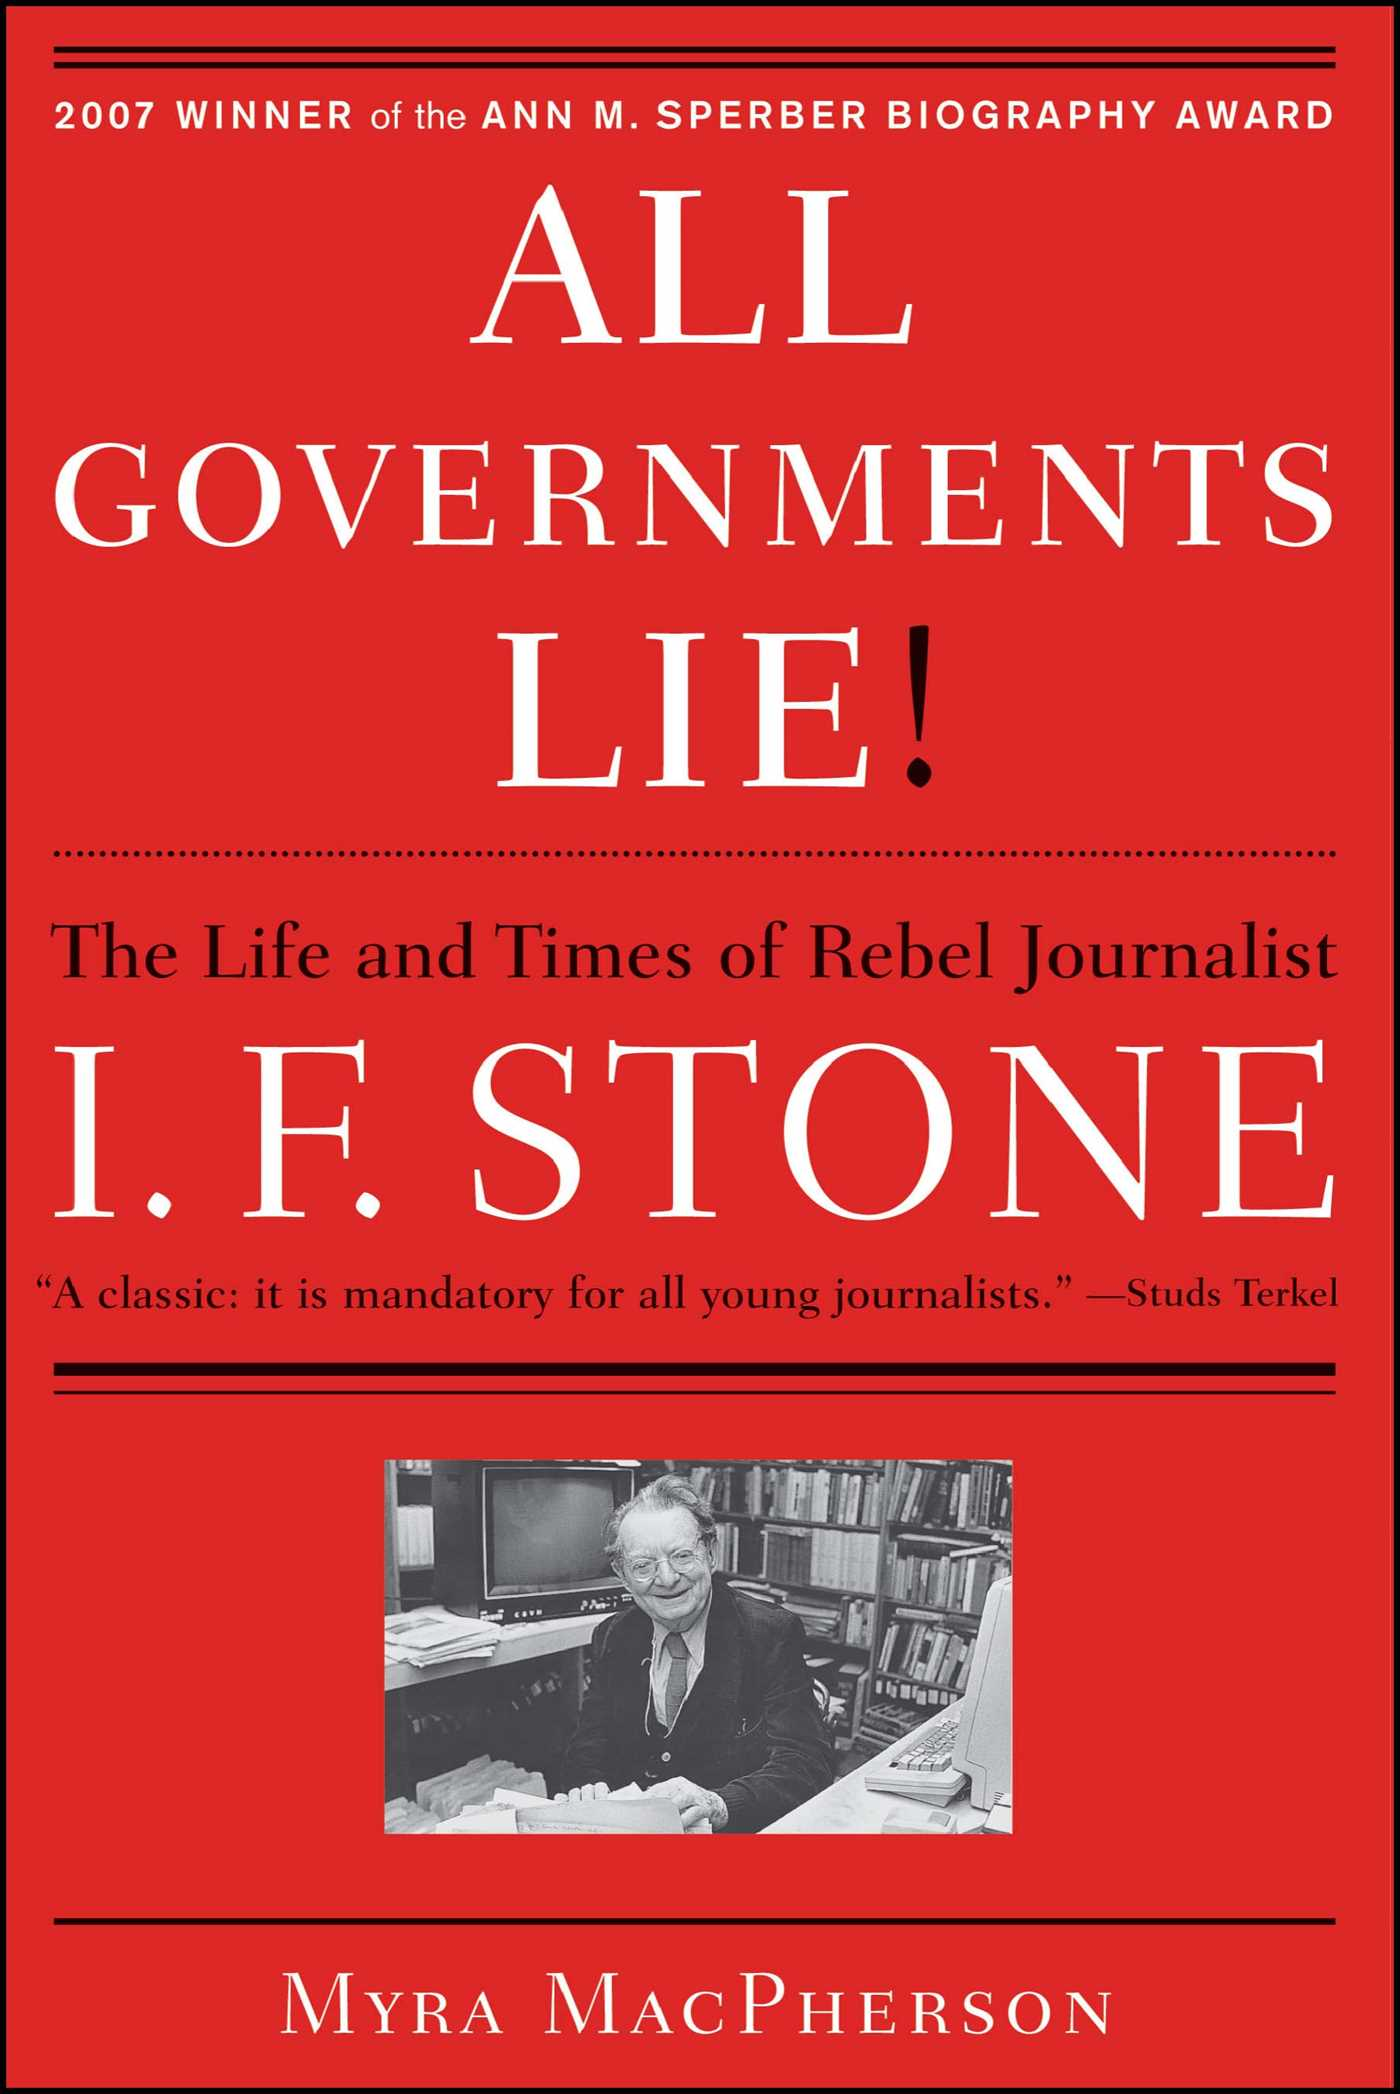 All governments lie 9781416556794 hr